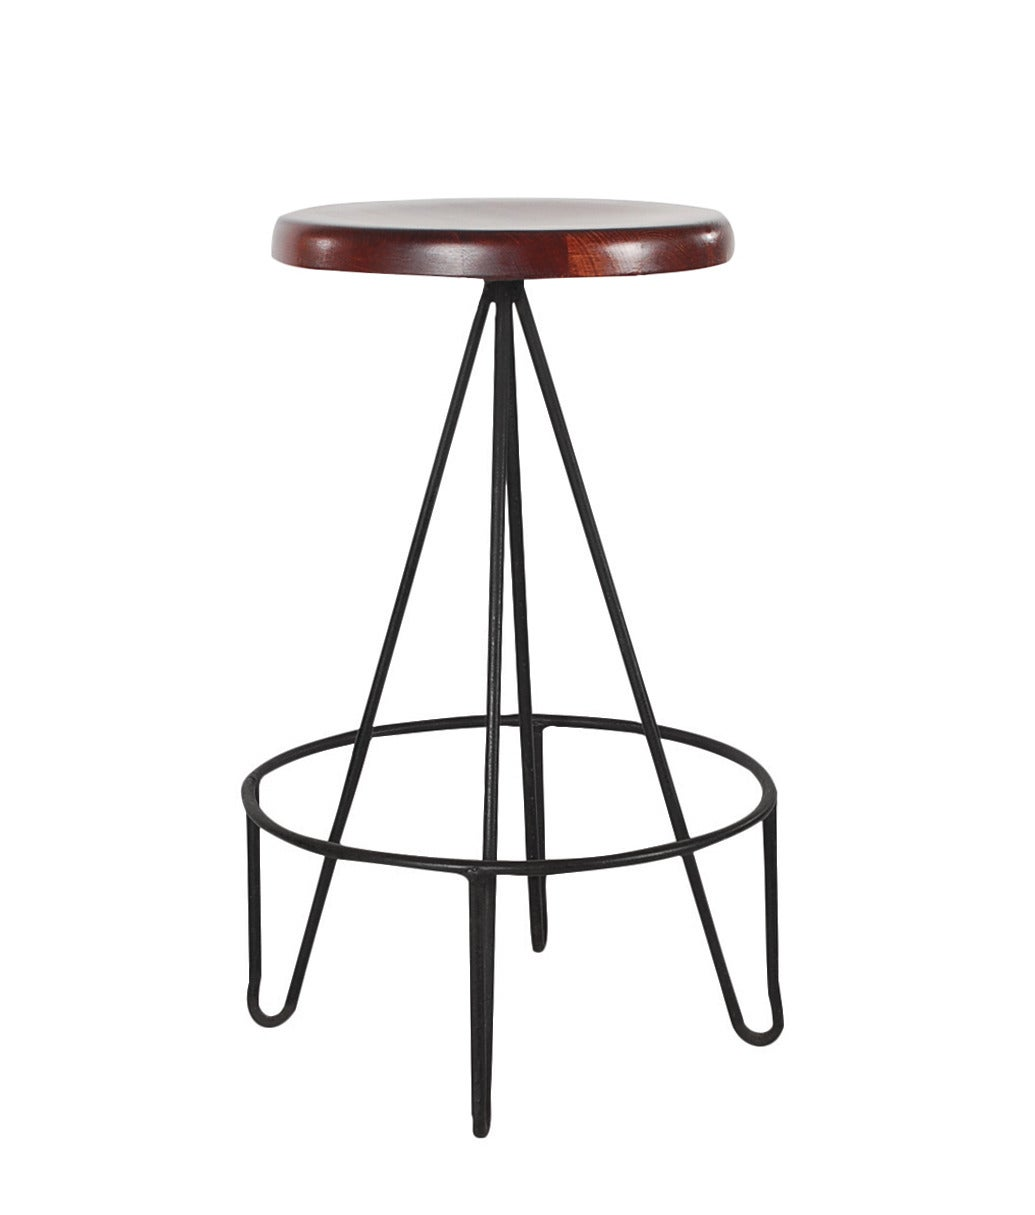 Frederick Weinberg Iron Hairpin Leg Bar Stools at 1stdibs : hw85261 1 from www.1stdibs.com size 1035 x 1215 jpeg 48kB